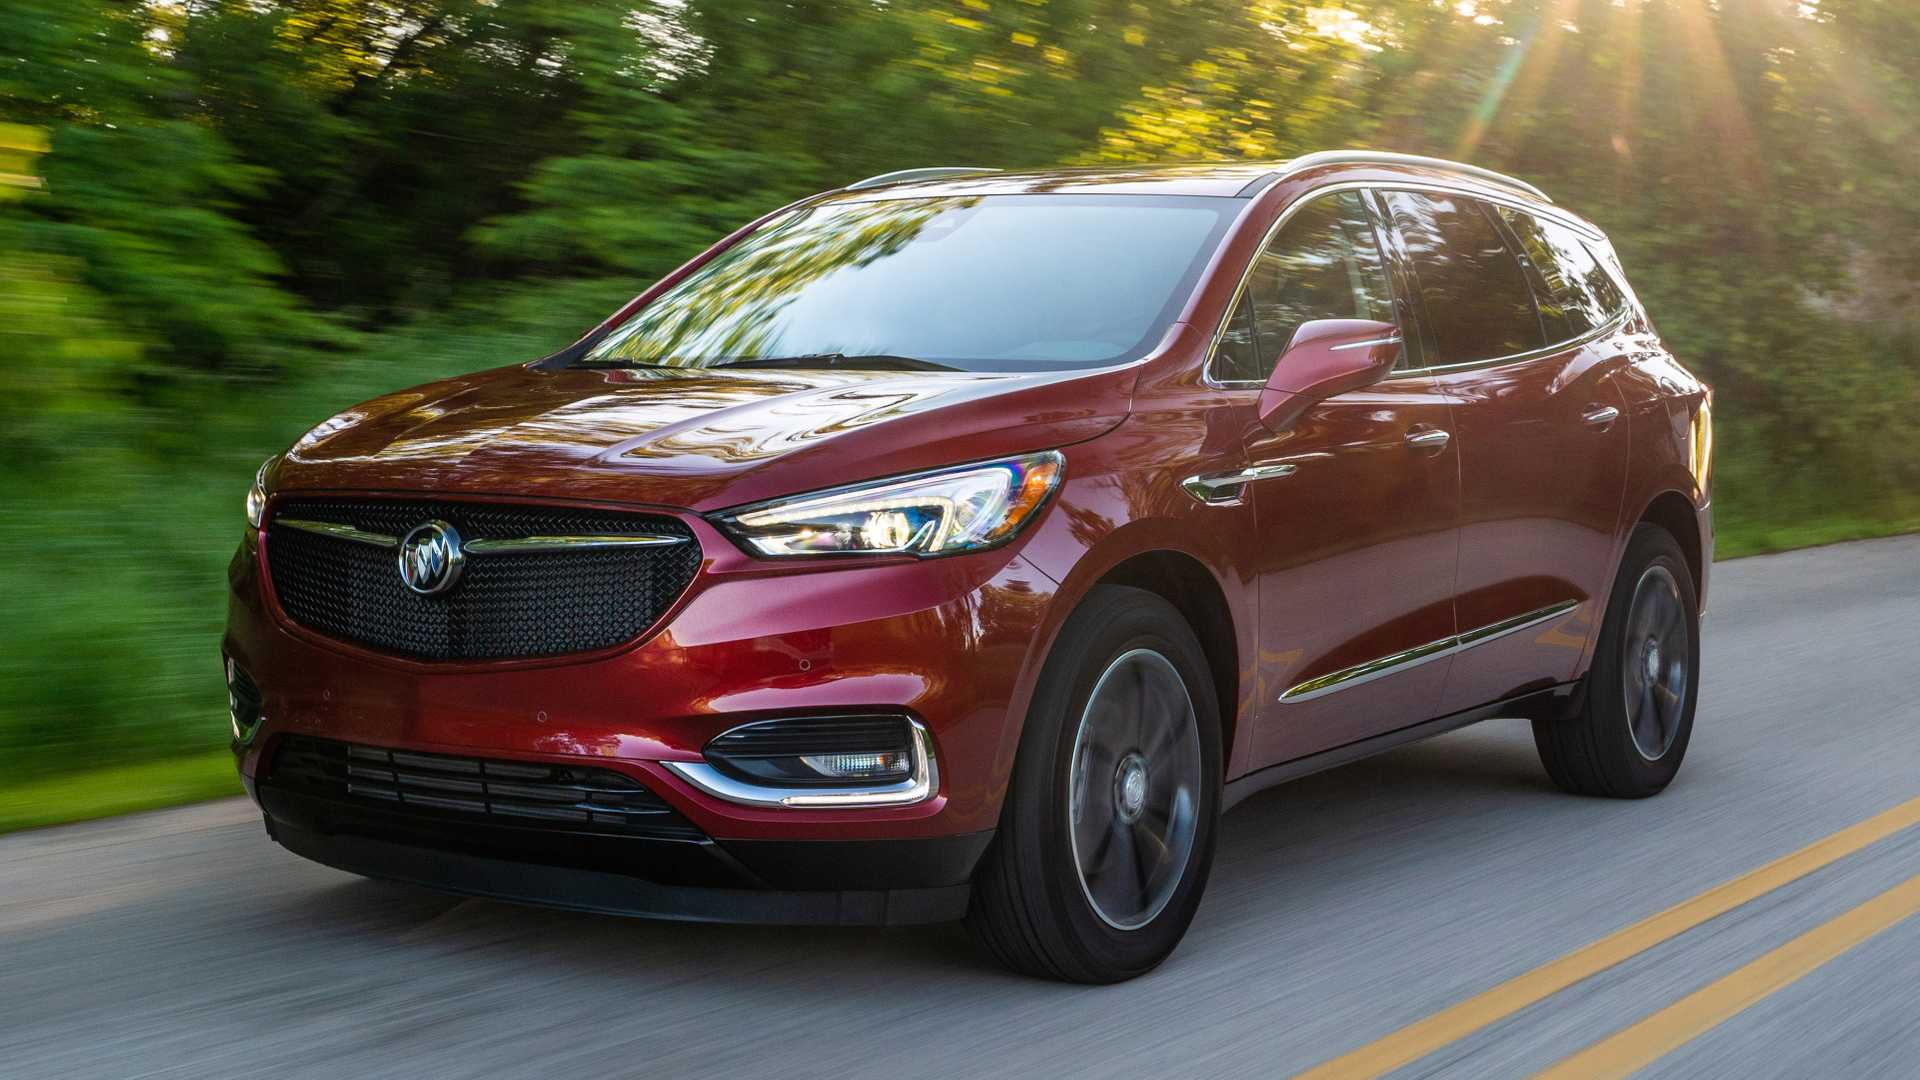 58 Great 2020 Buick Crossover Speed Test by 2020 Buick Crossover